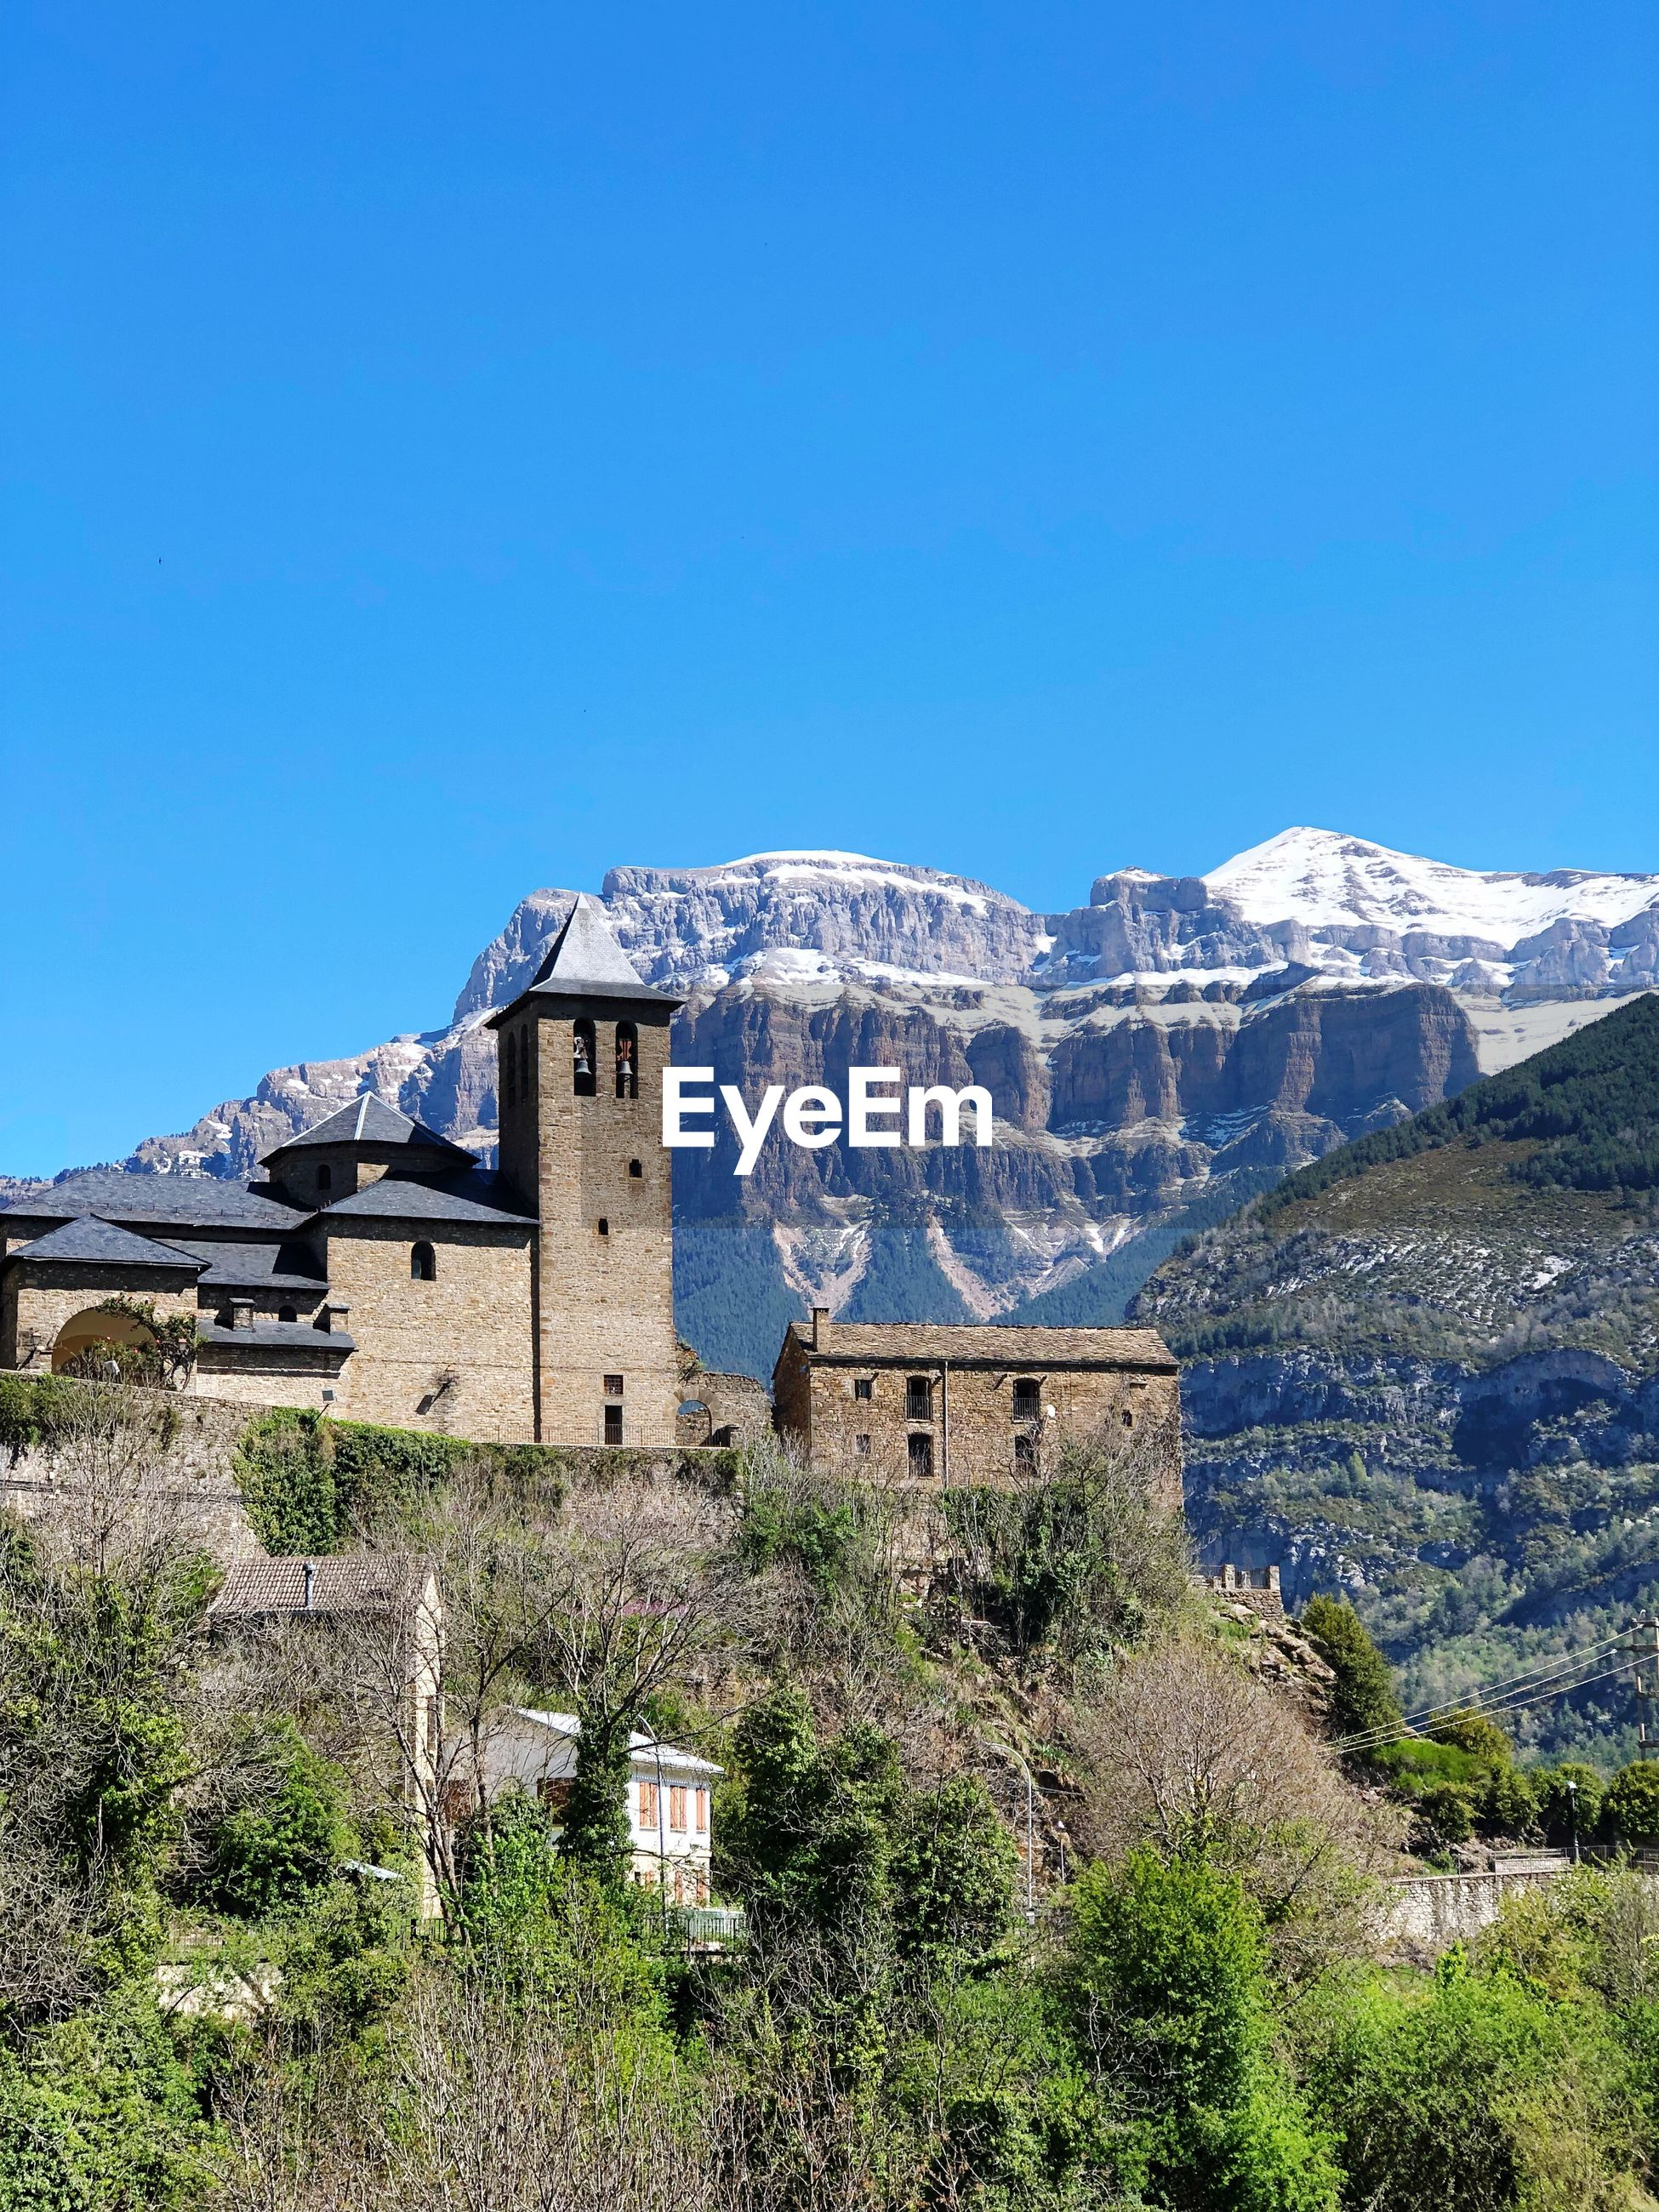 BUILDINGS AGAINST CLEAR BLUE SKY WITH MOUNTAIN RANGE IN FOREGROUND